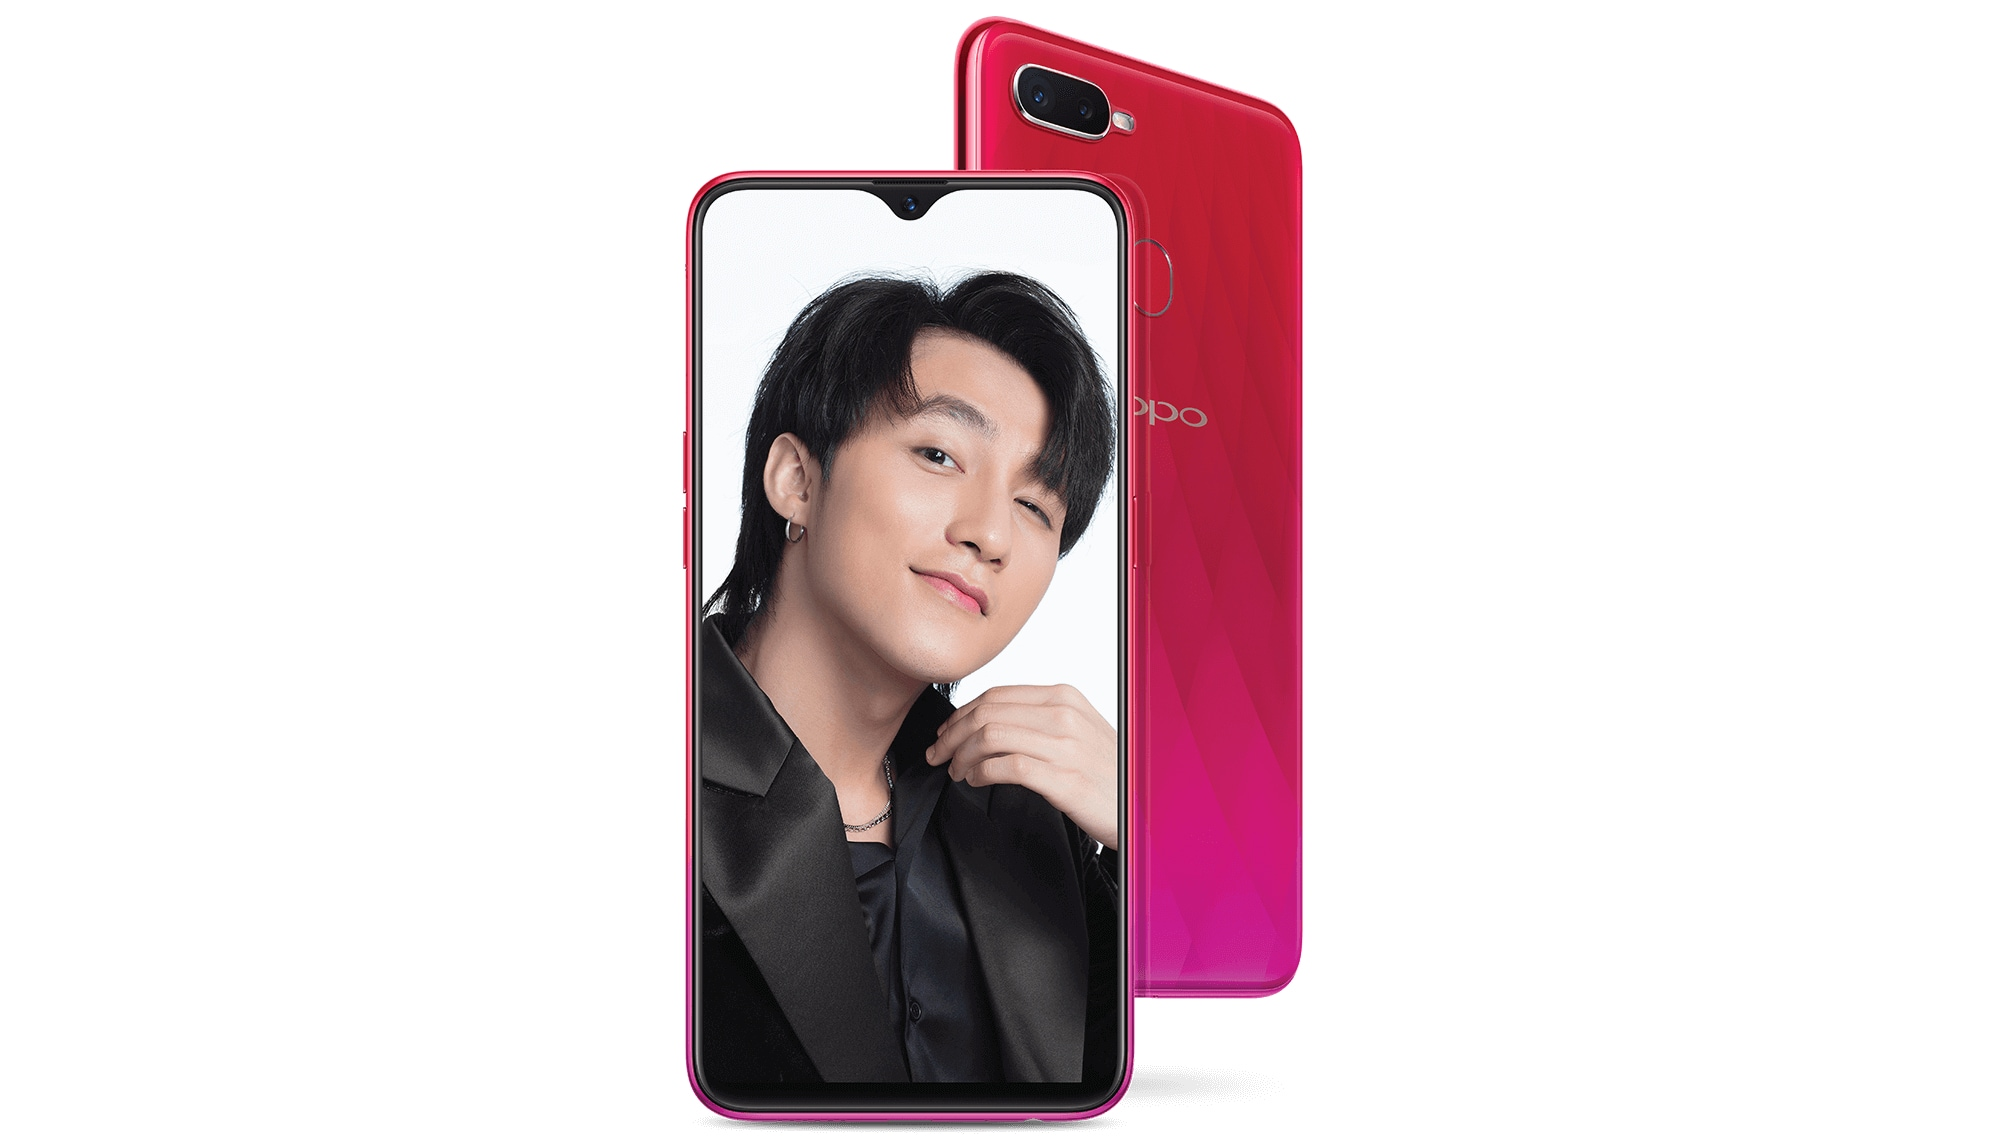 Oppo F9 With Waterdrop Display, Up to 6GB RAM Launched: Price, Specifications, More